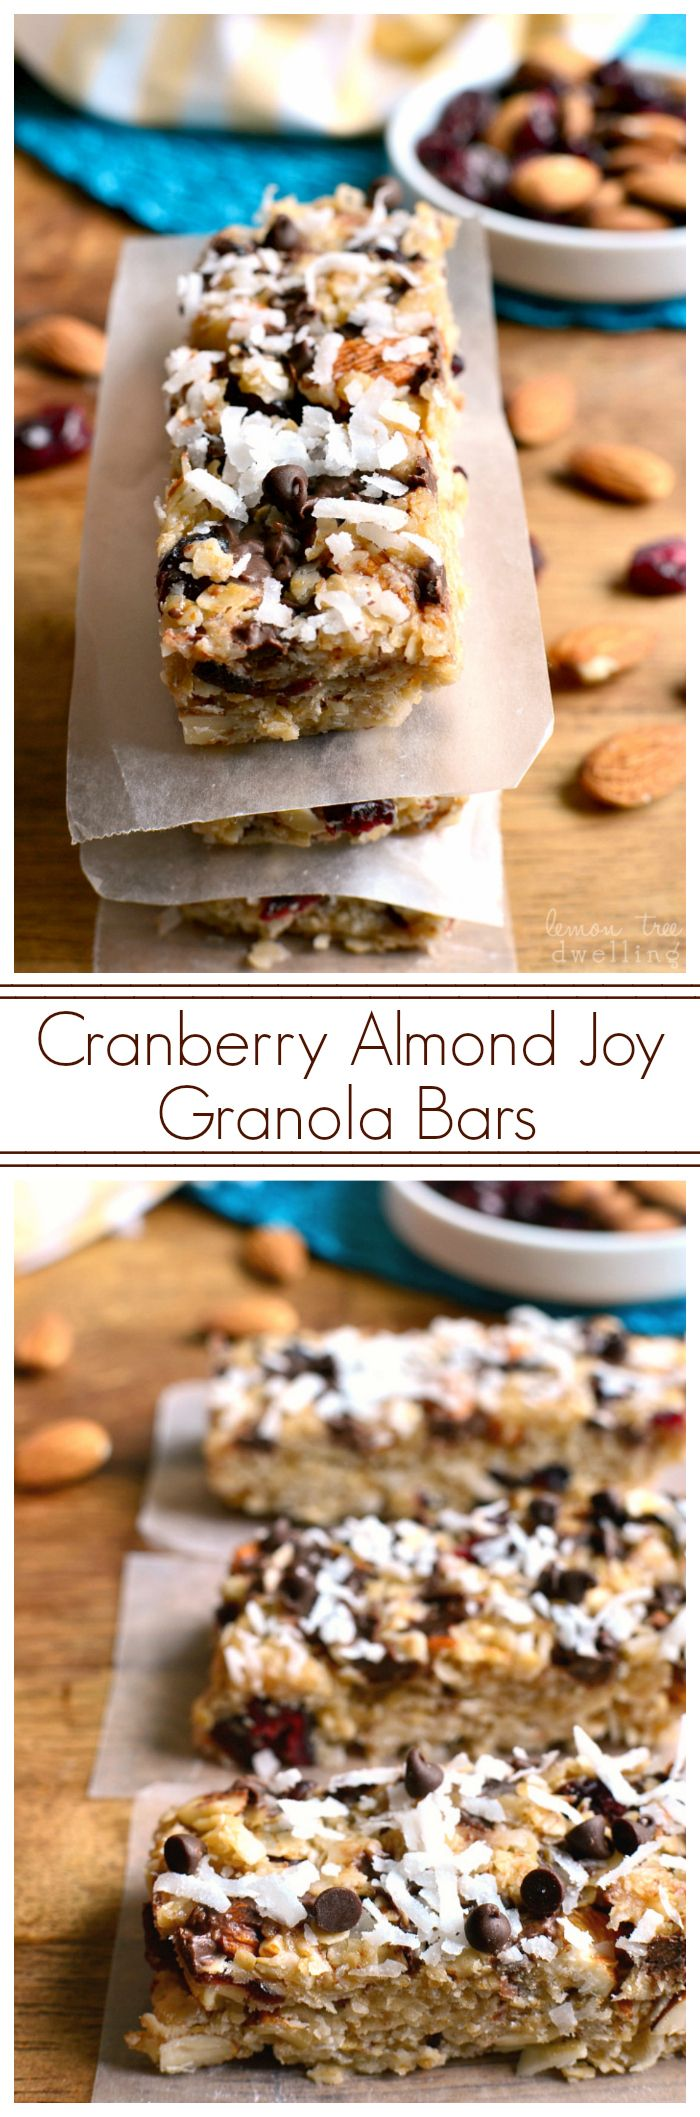 No-Bake Cranberry Almond Joy Granola Bars - sweetened with cranberries, almonds, coconut, and chocolate chips. These bars are perfect for breakfast or snack, and easy to take (and eat) on the go!